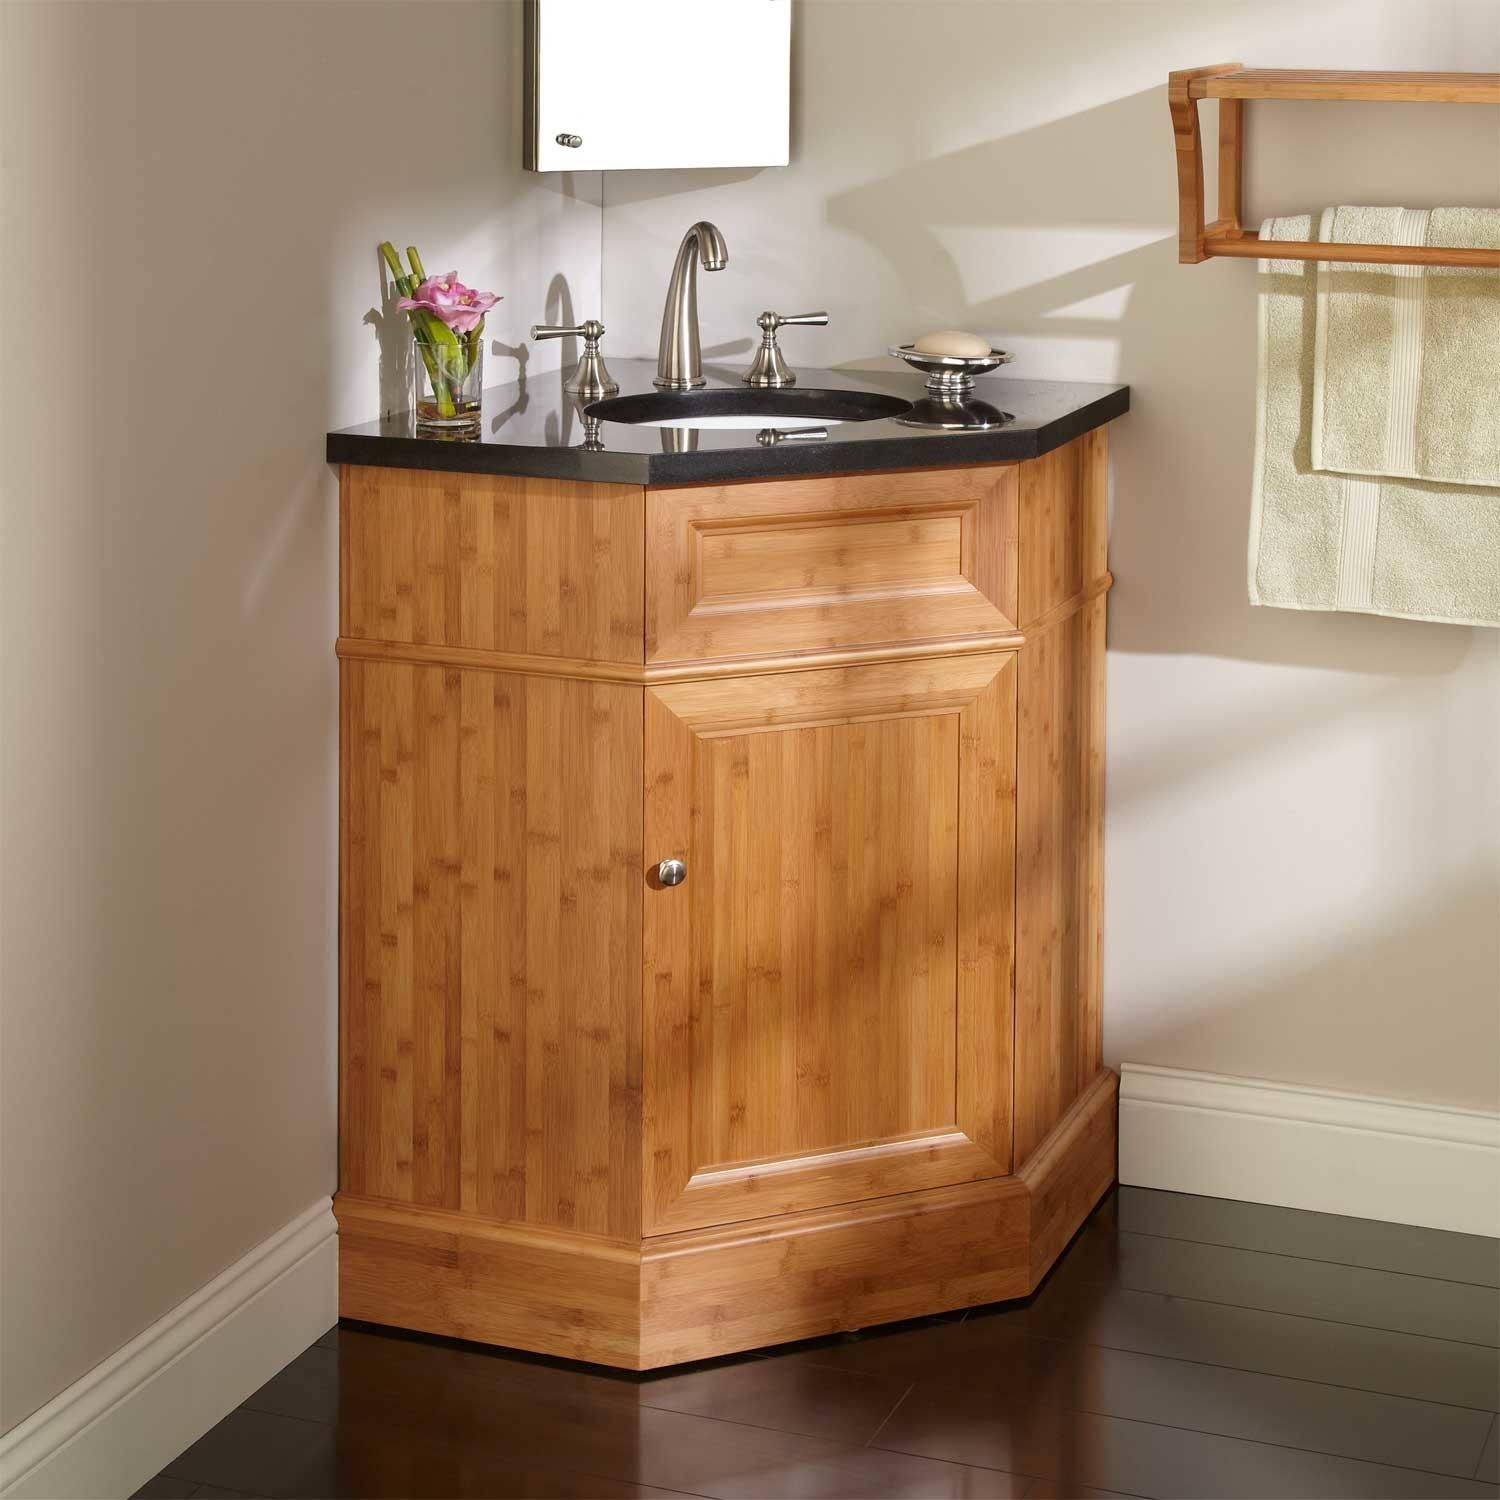 36 bridgemill corner bamboo vanity for undermount sink - Corner bathroom vanities for sale ...